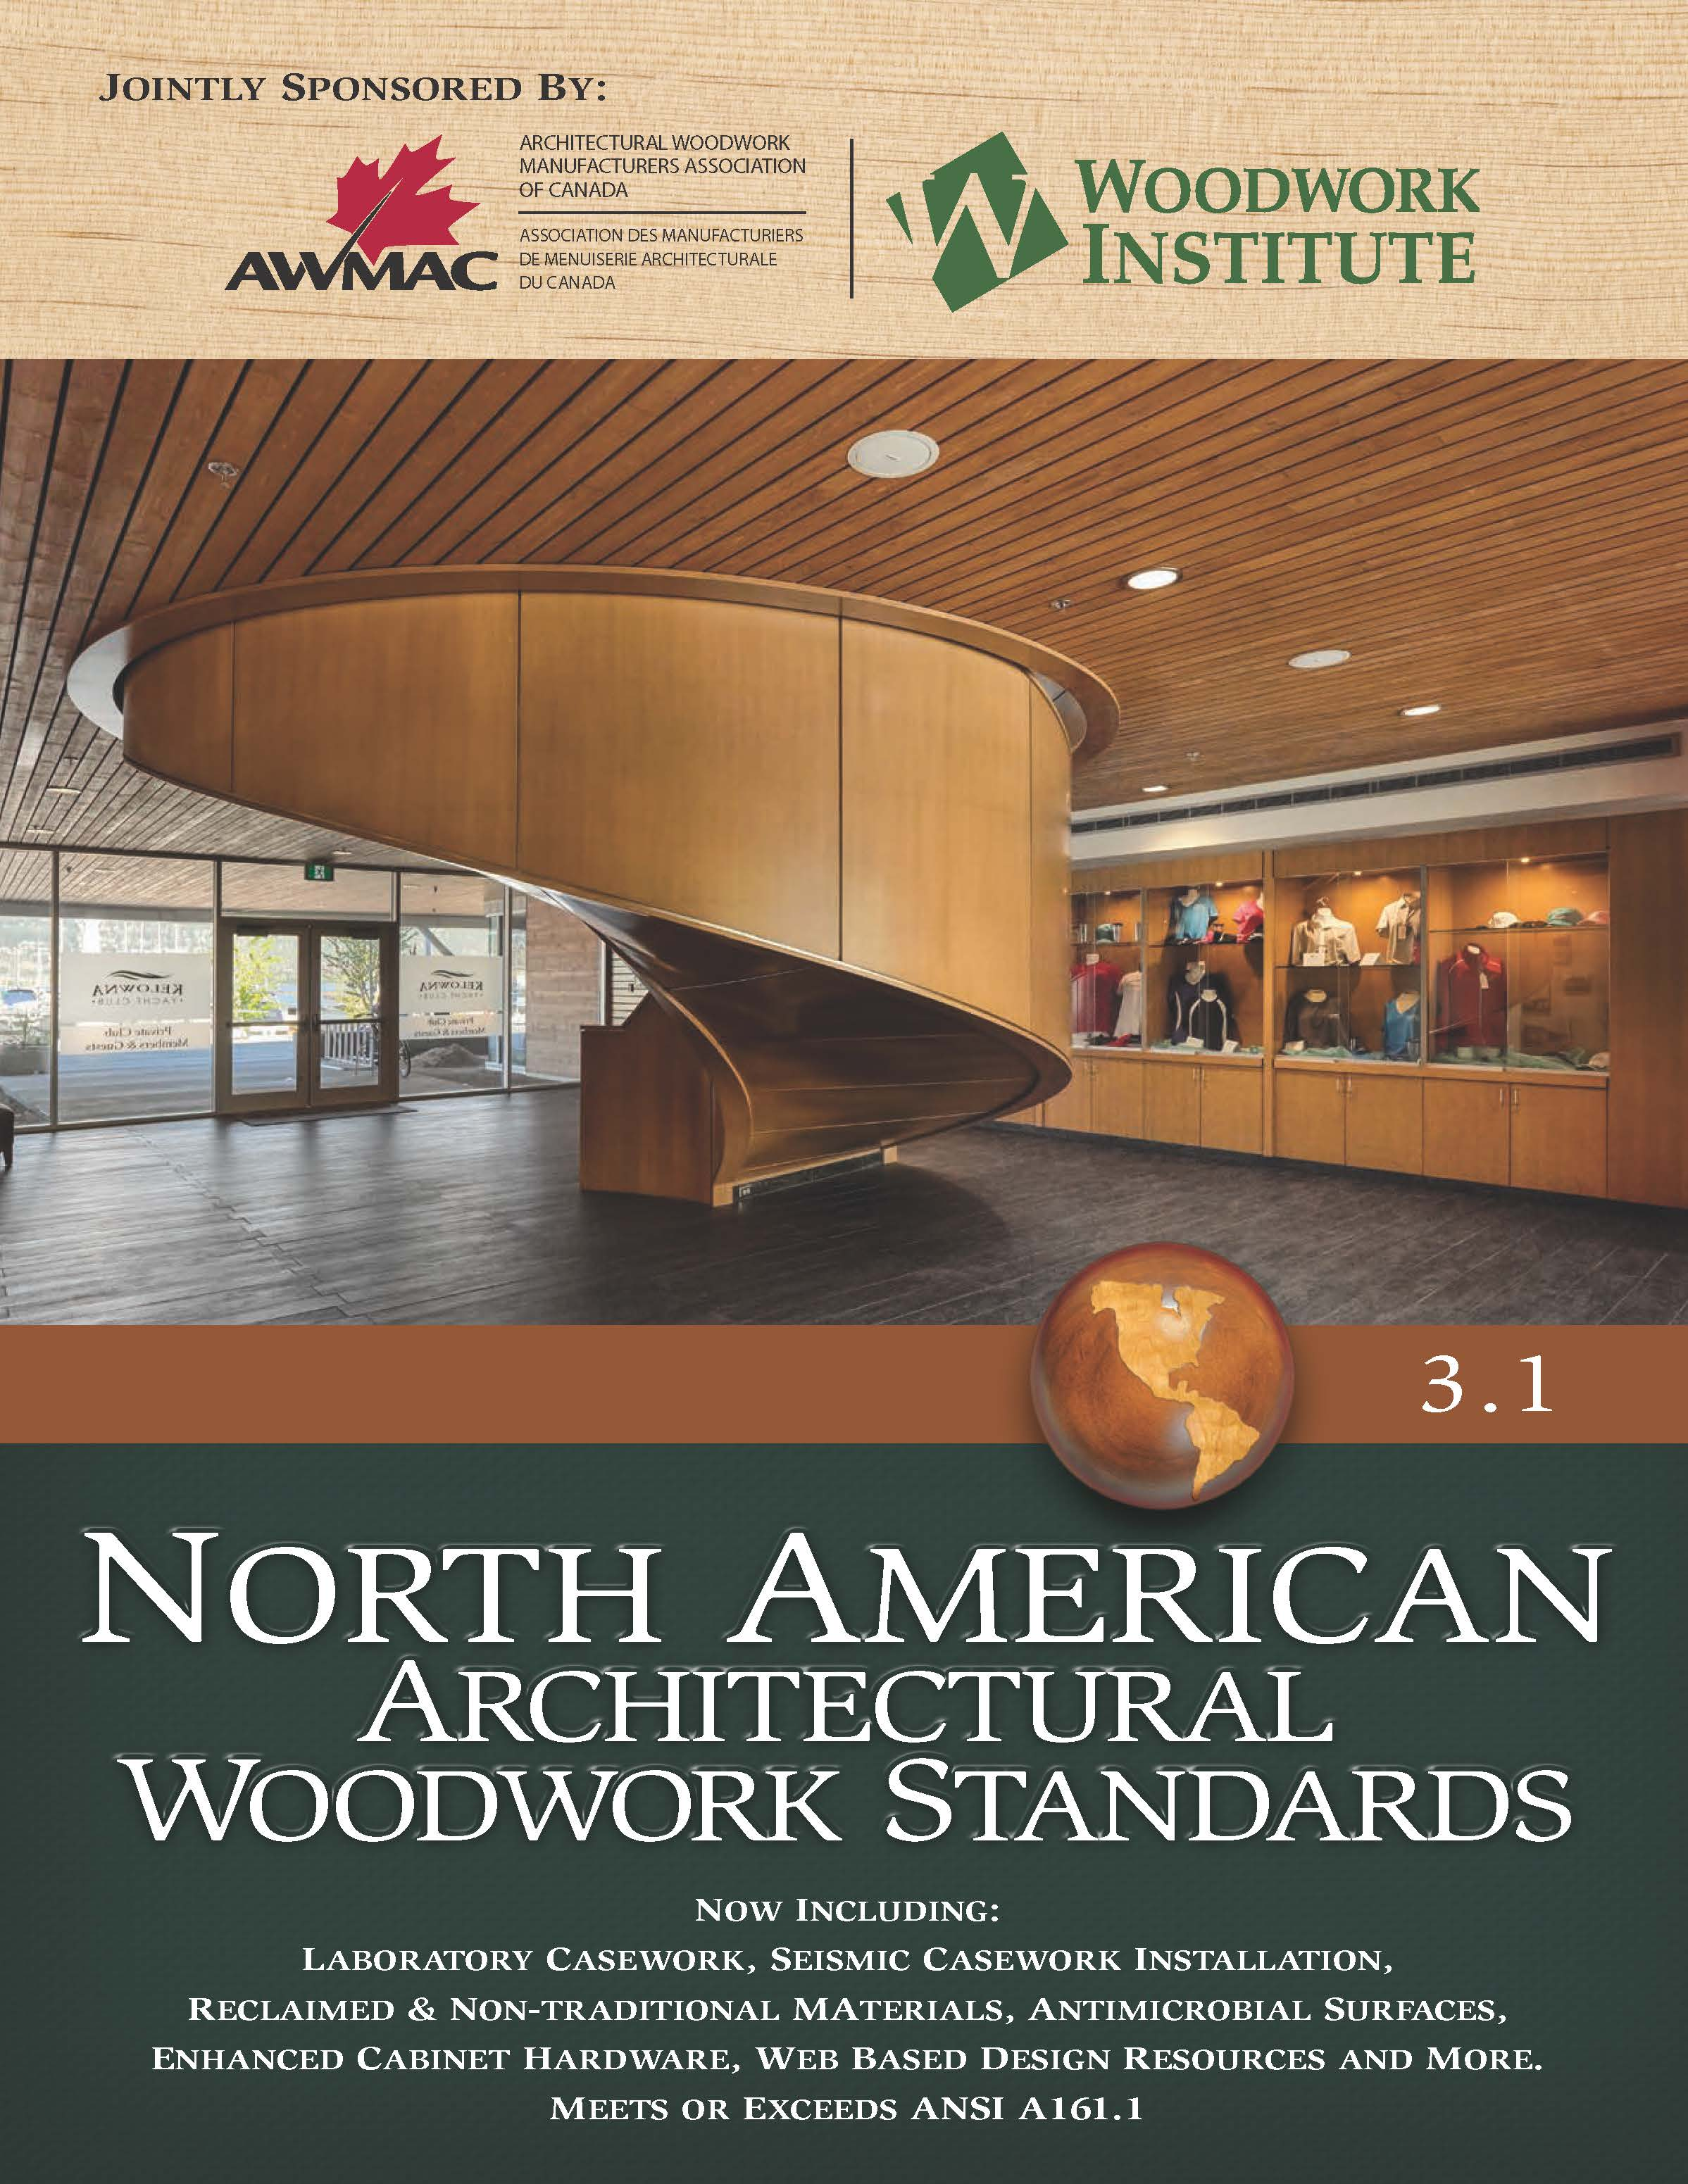 Cover image of the North American Architectural Woodwork Standards 3.1